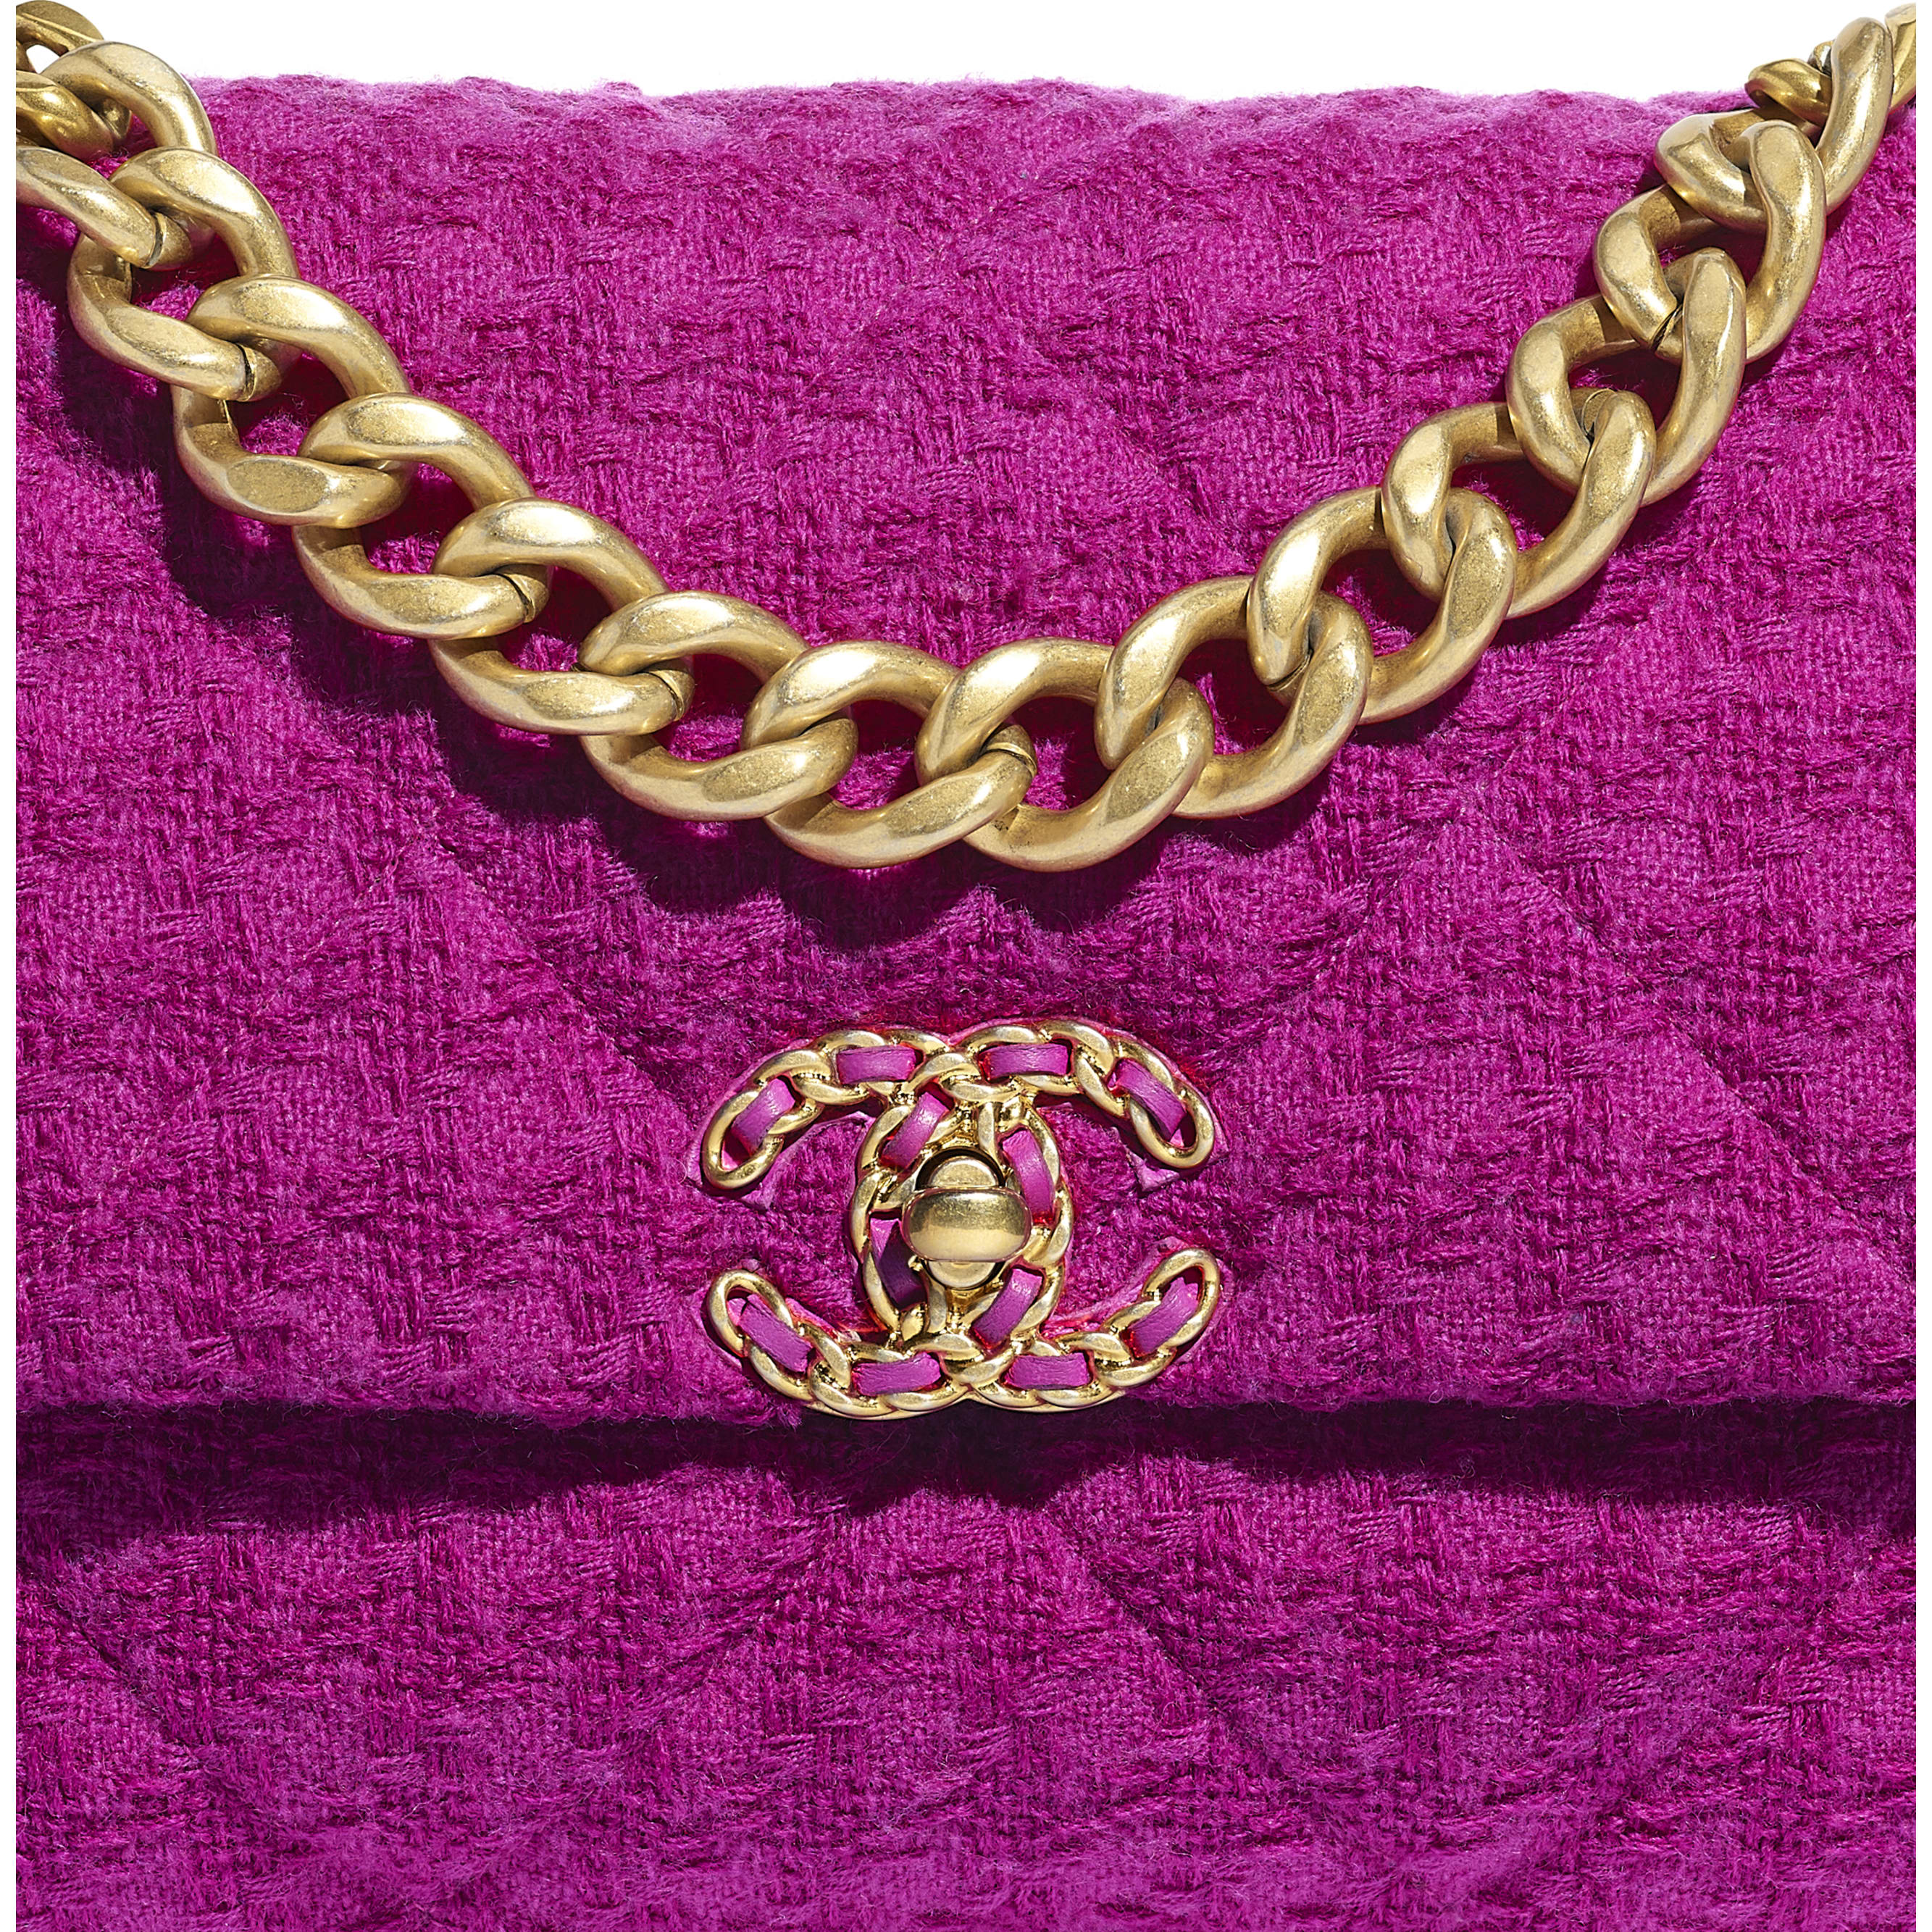 CHANEL 19 Large Flap Bag - Fuchsia - Wool Tweed, Gold-Tone, Silver-Tone & Ruthenium-Finish Metal - Extra view - see standard sized version